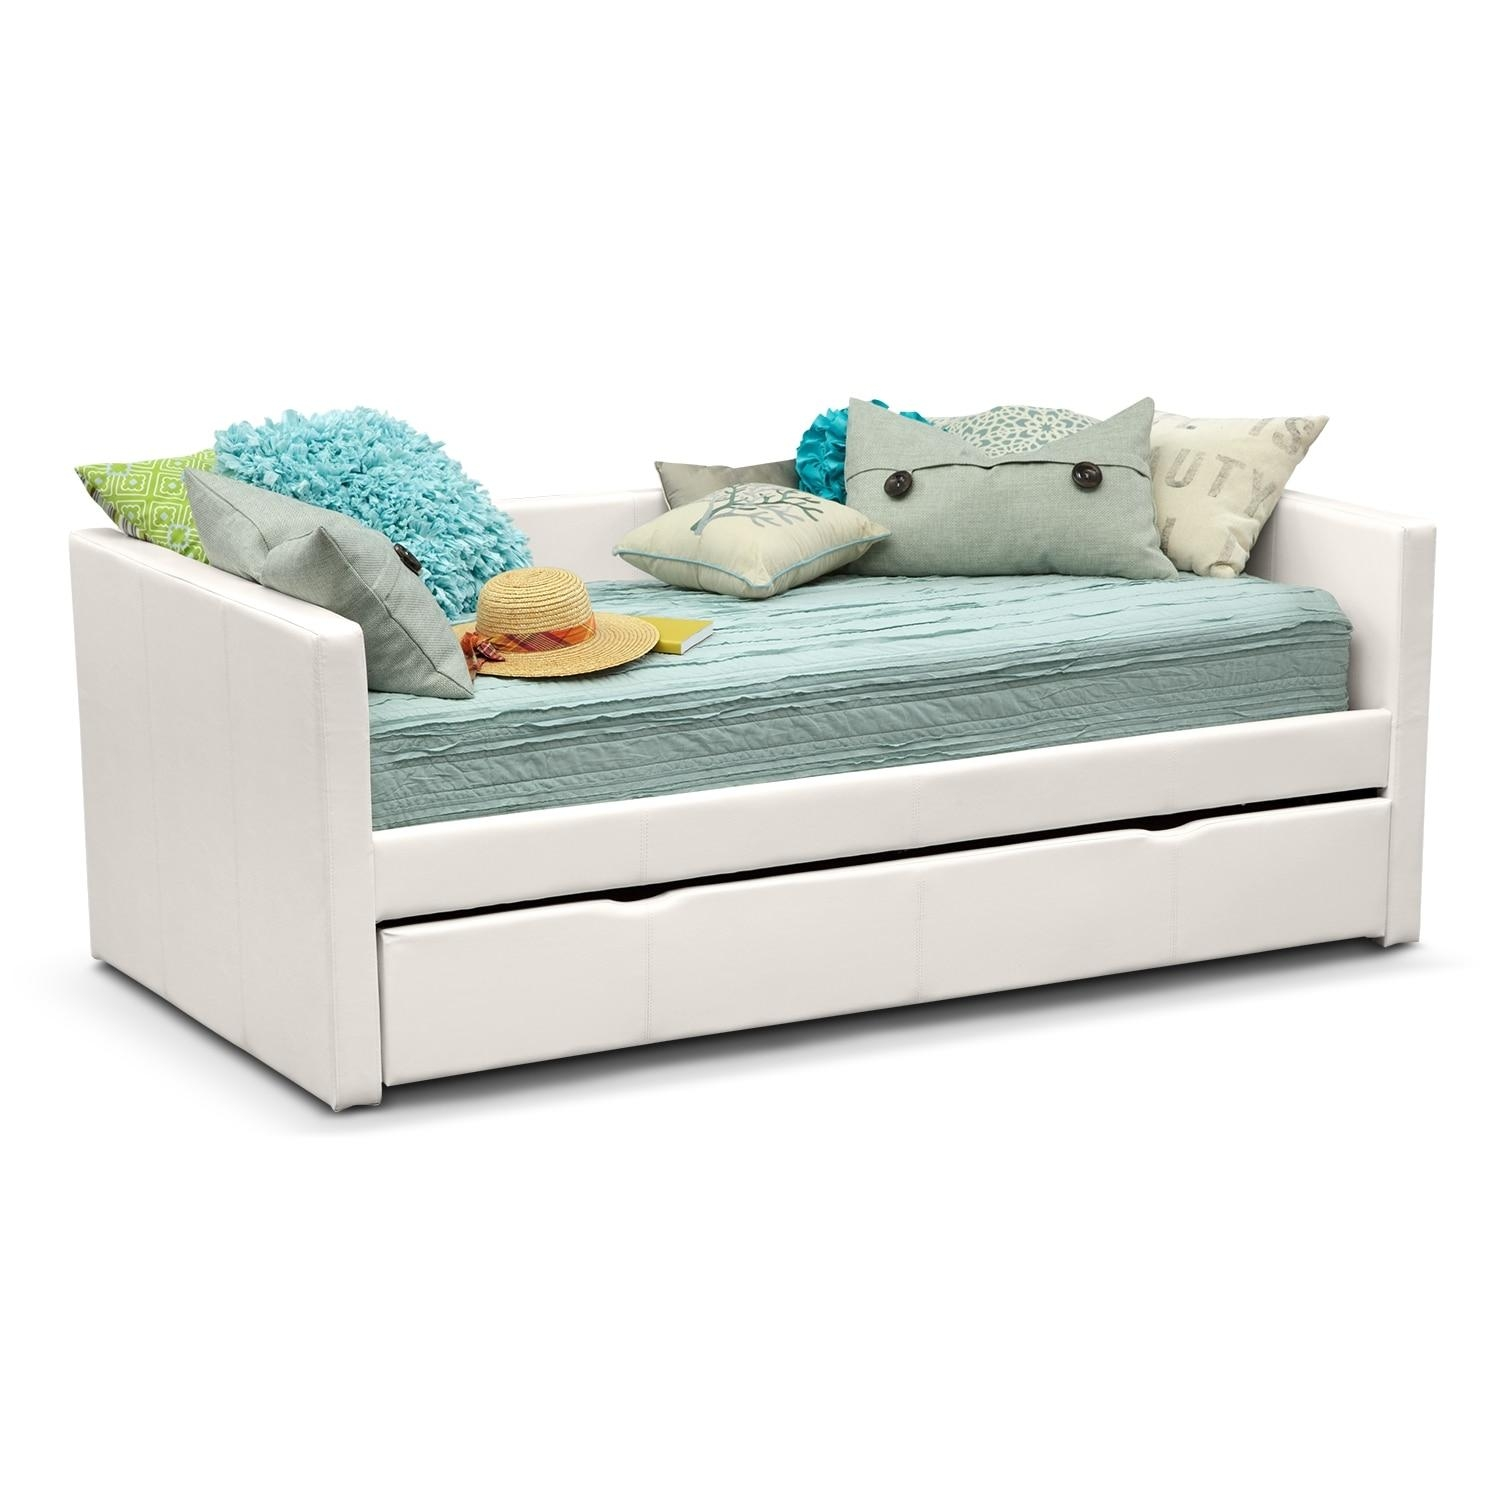 Daybeds & Trundle Beds | Bedroom Furniture | American Signature Pertaining To Sofas Daybed With Trundle (Image 3 of 20)